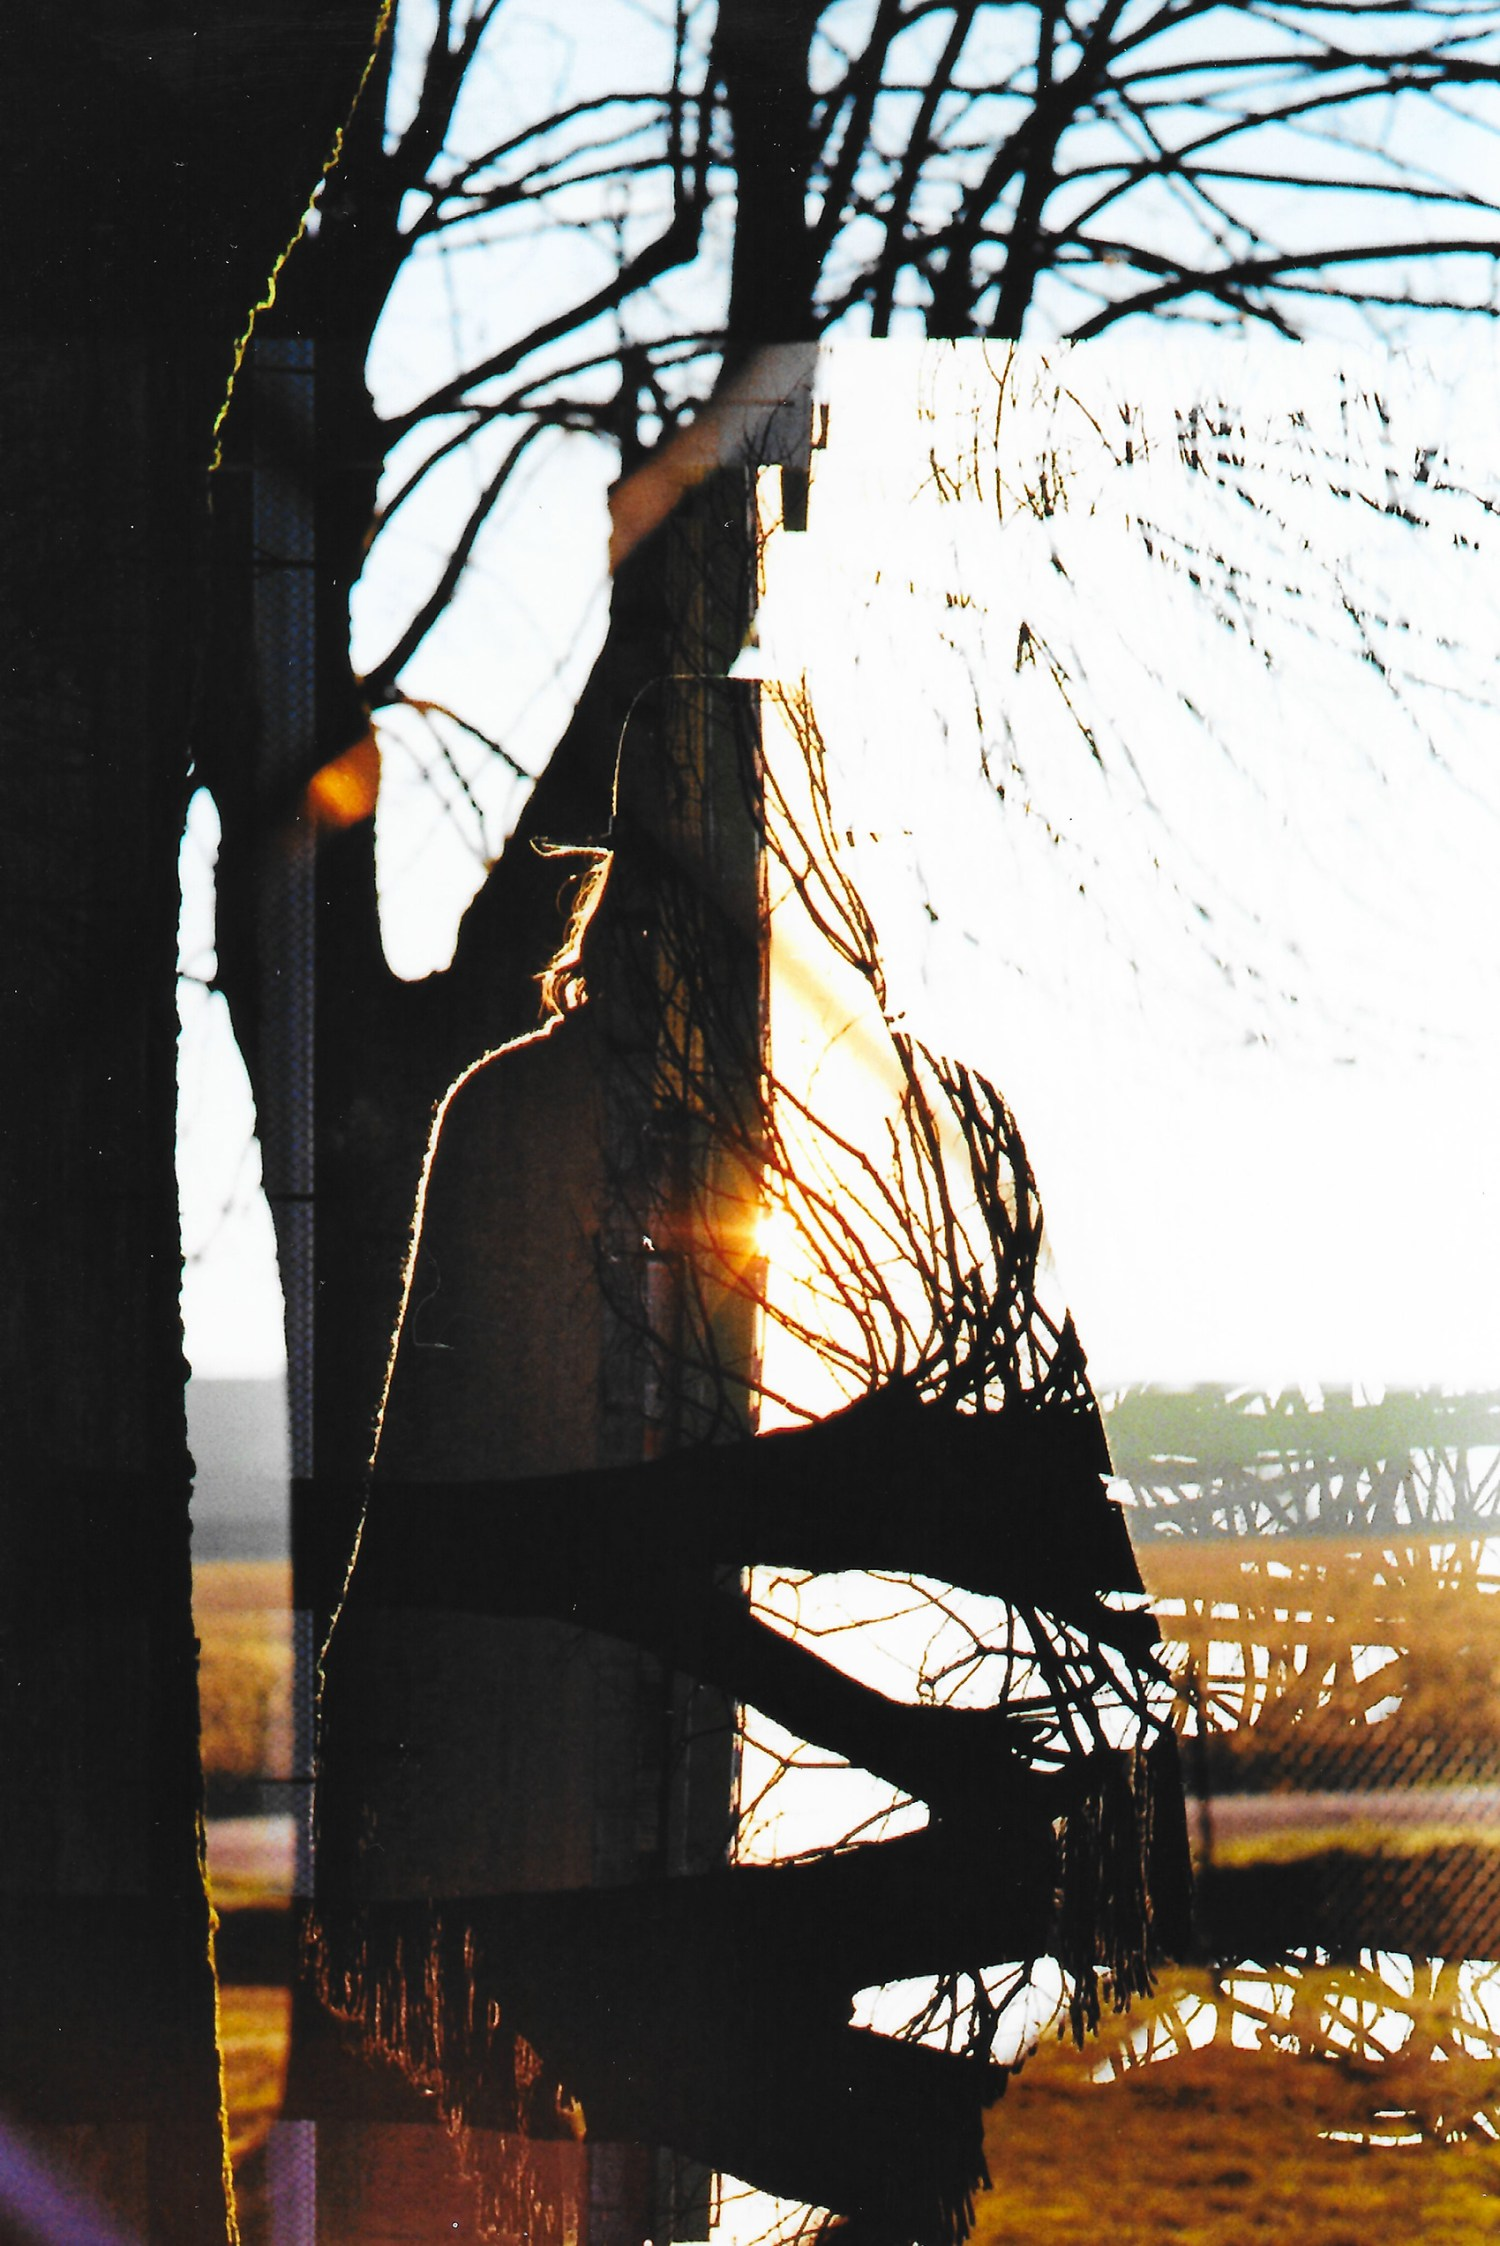 Double Exposure in Analog Photography 35mminstyle